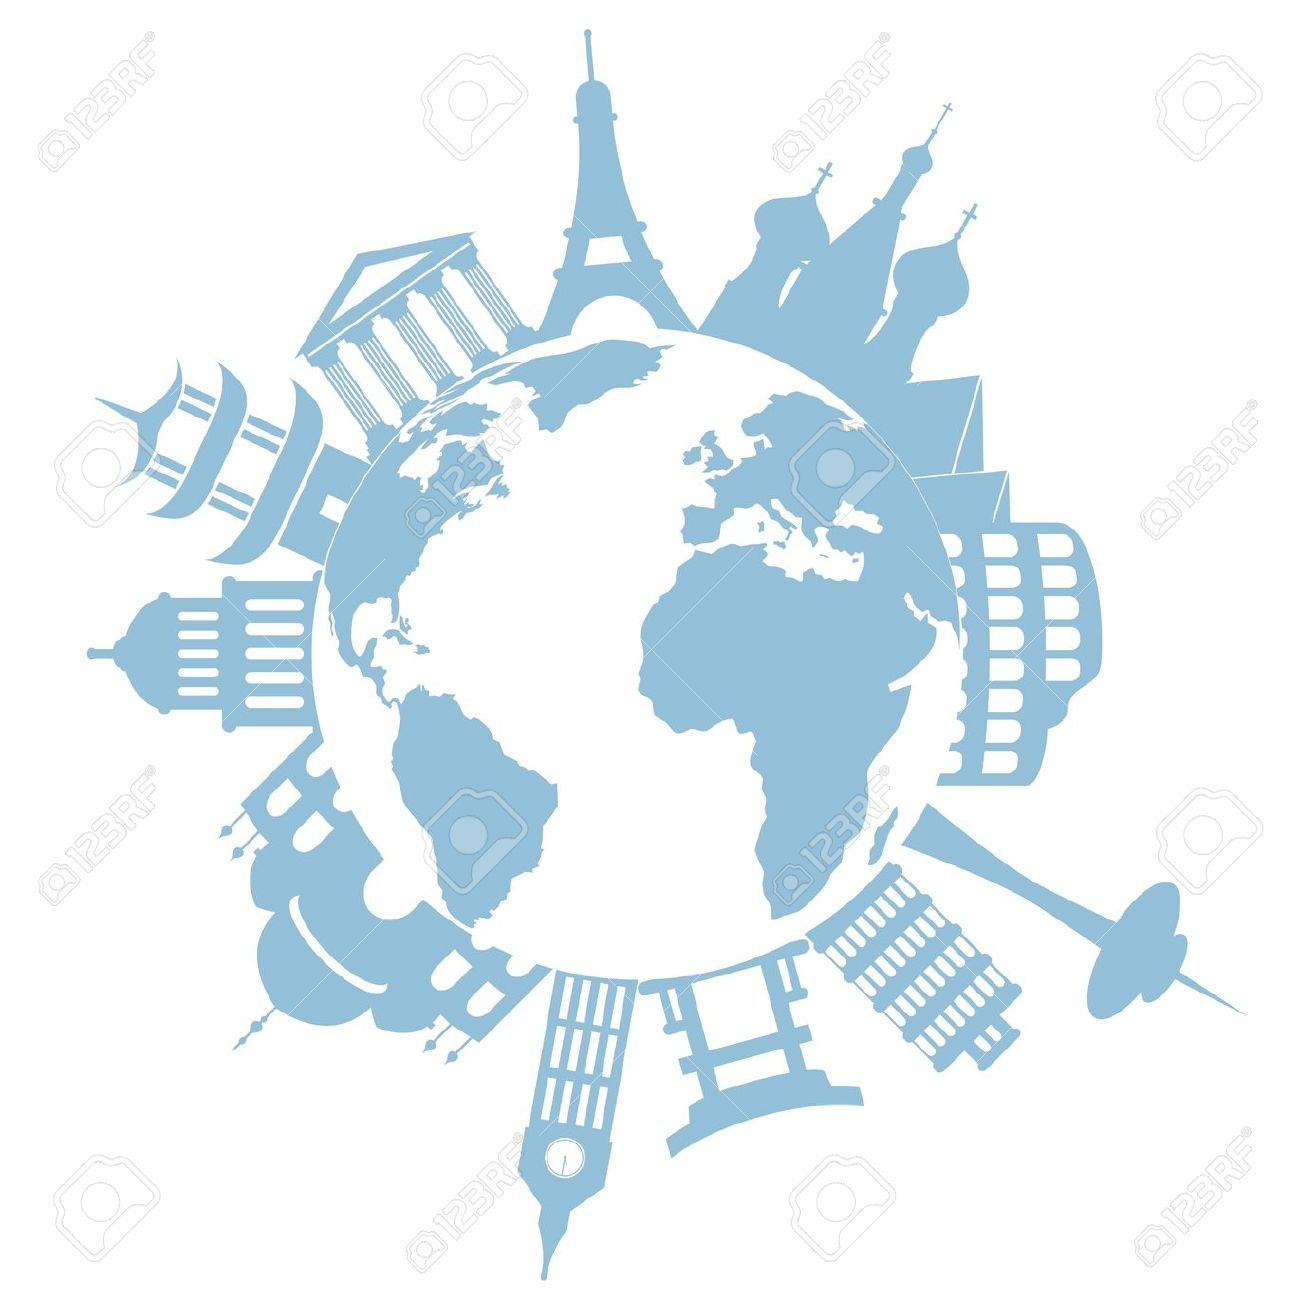 World's Famous Landmarks And Monuments Royalty Free Cliparts.